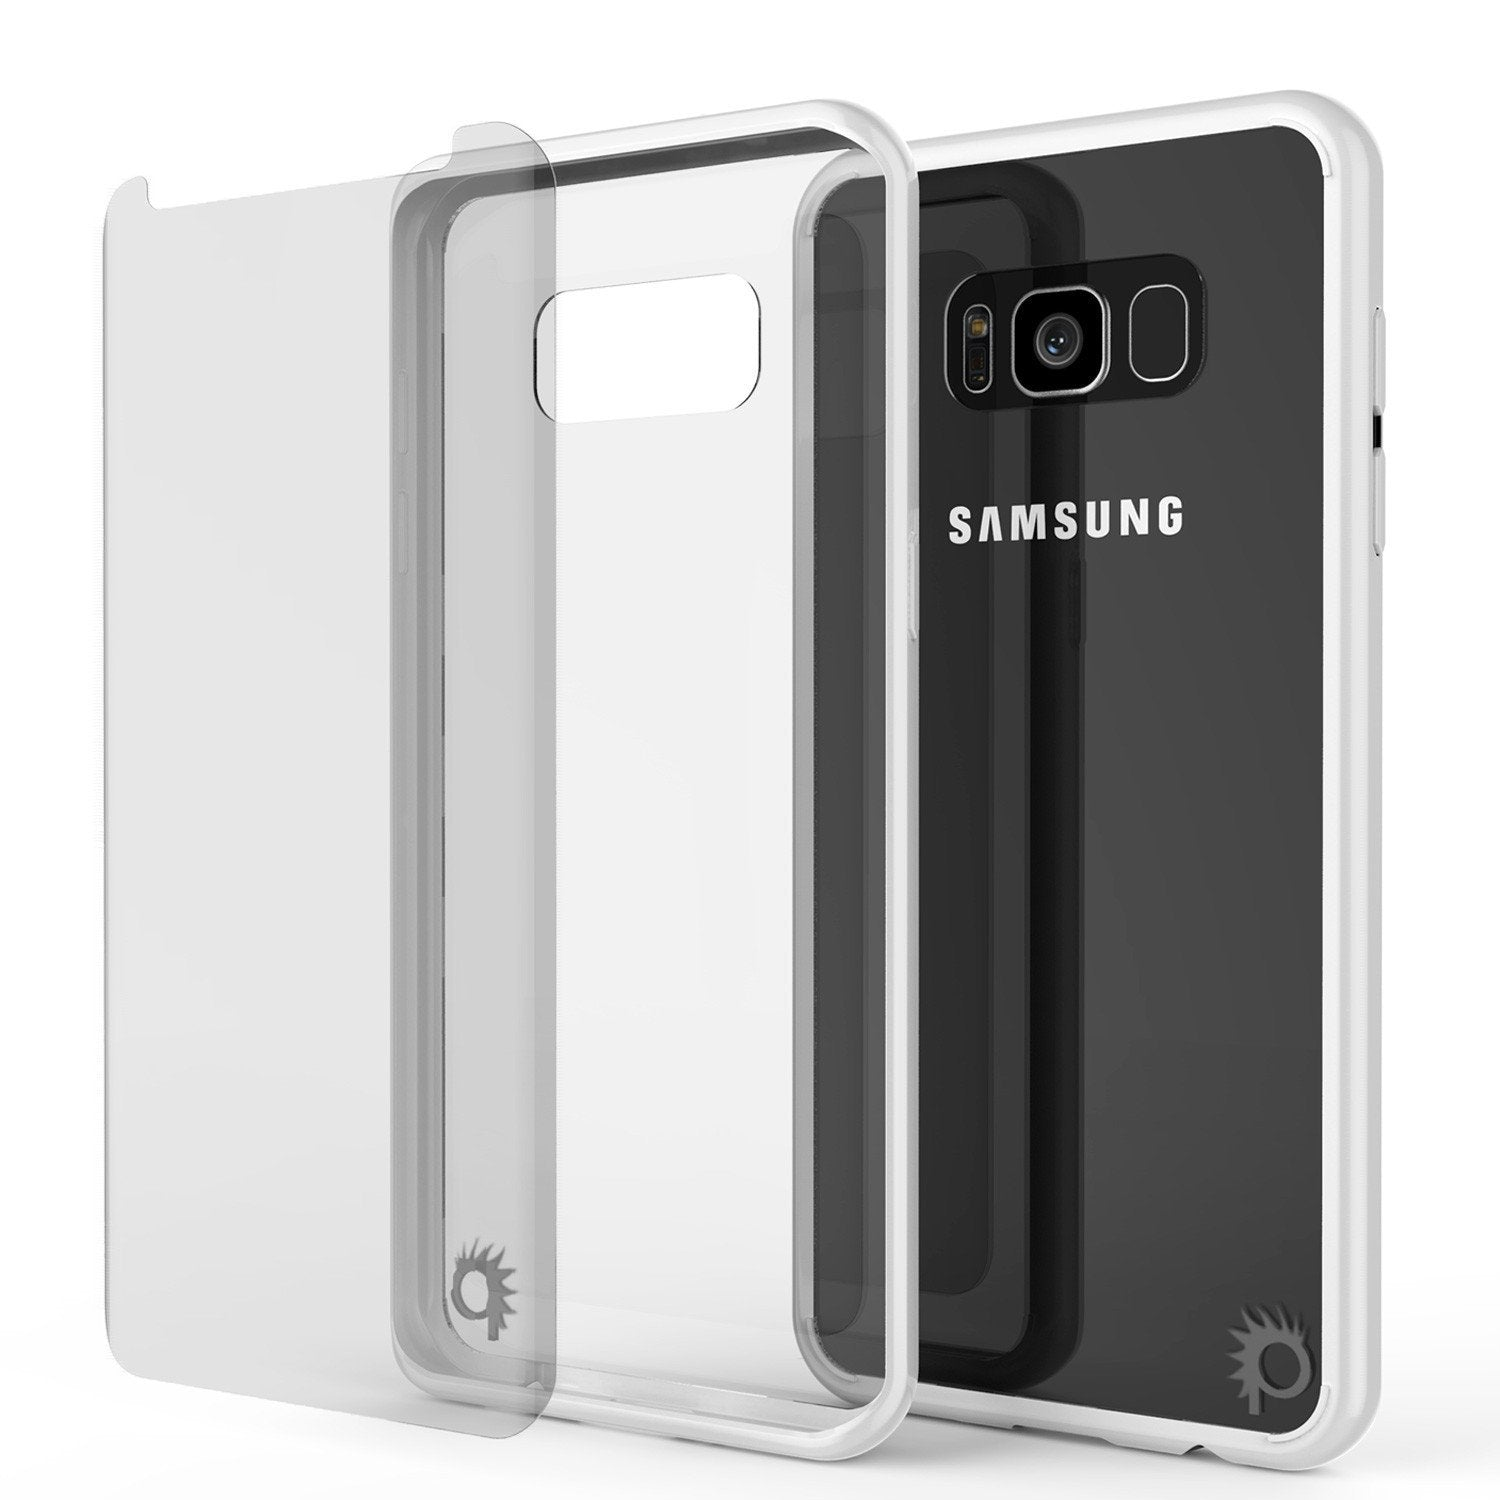 S8 Plus Slim & Slick Frame Lifetime Warranty Exchange Case | White